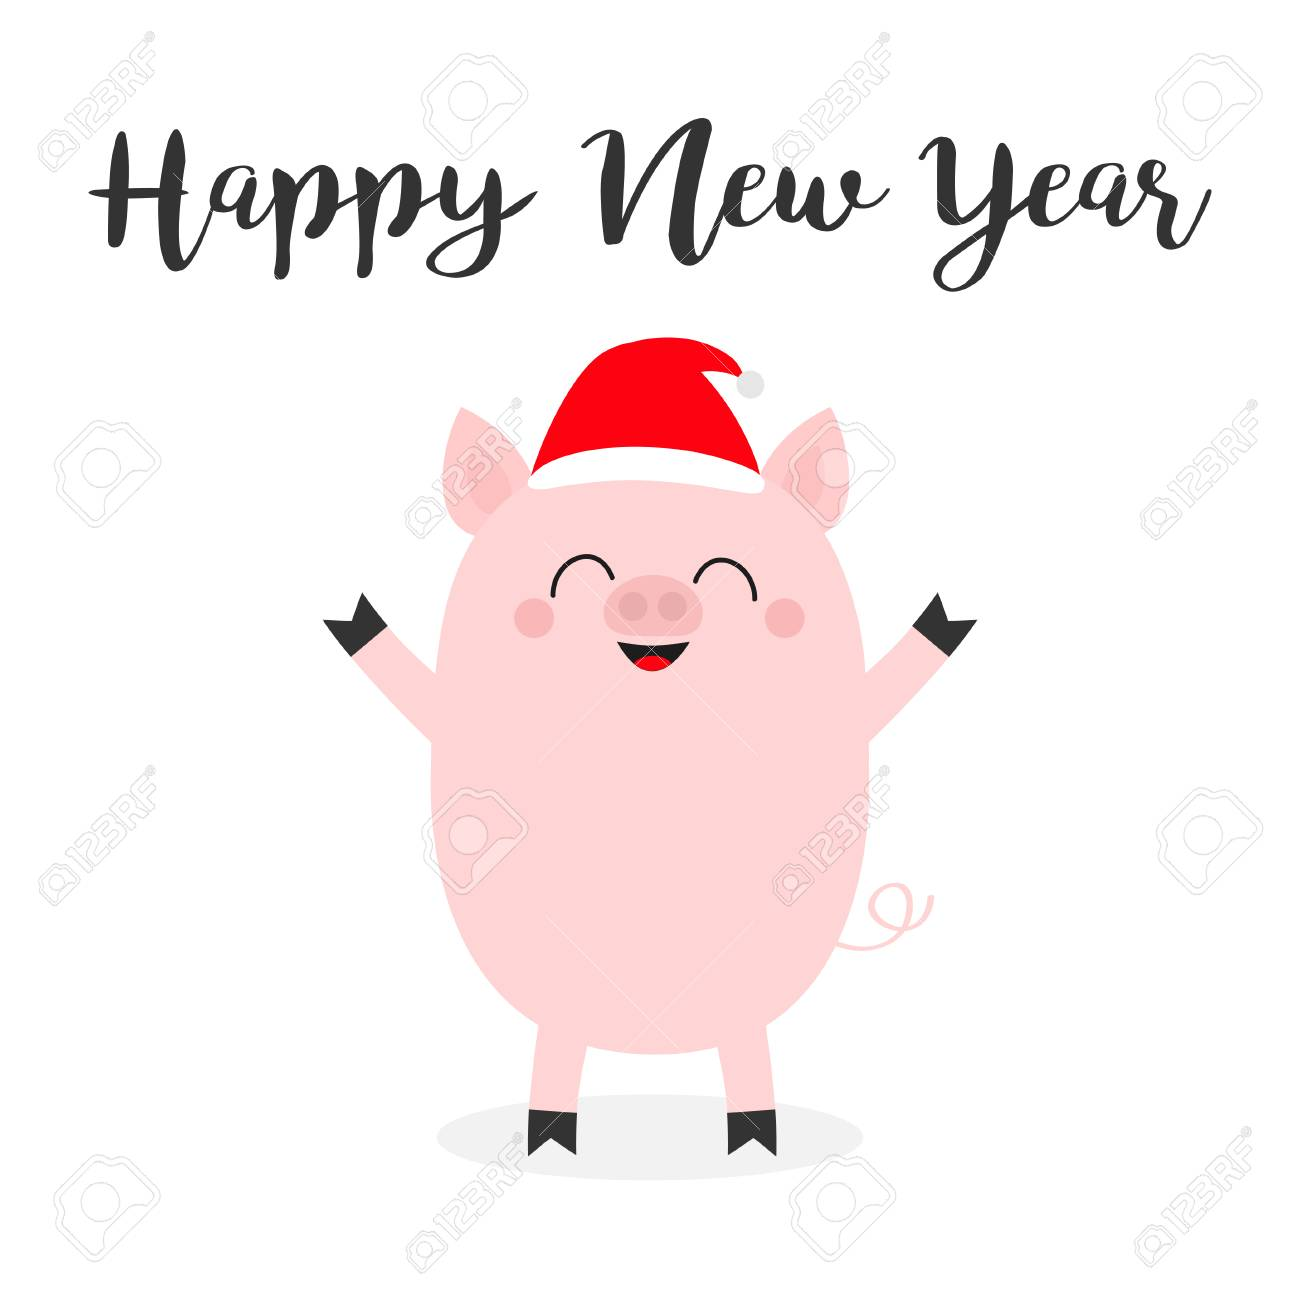 banque dimages happy new year pig piglet standing santa hat cute cartoon funny baby character chinise symbol of 2019 new year zodiac sign